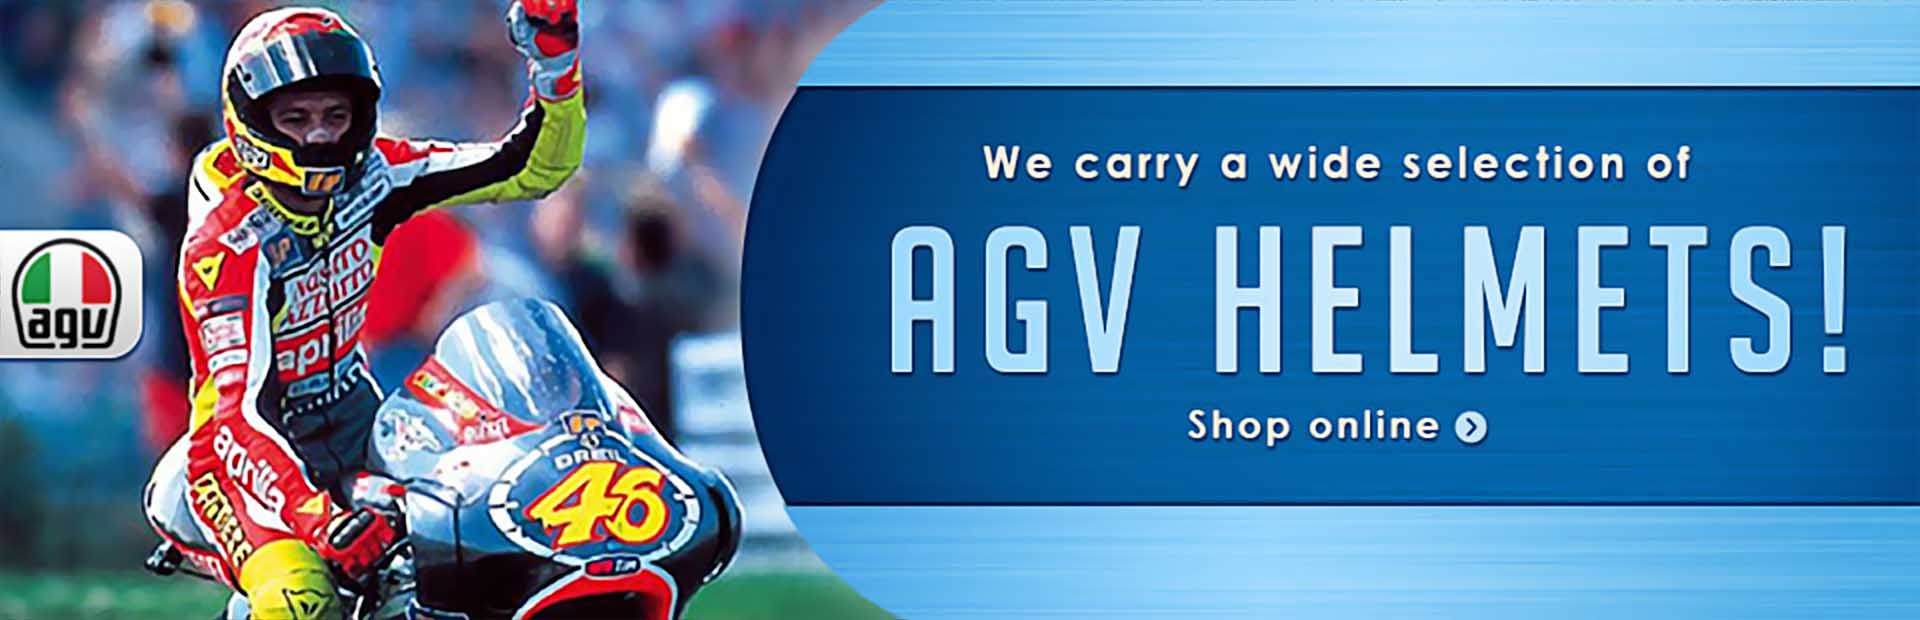 We carry a wide selection of AGV helmets! Click here to shop online.